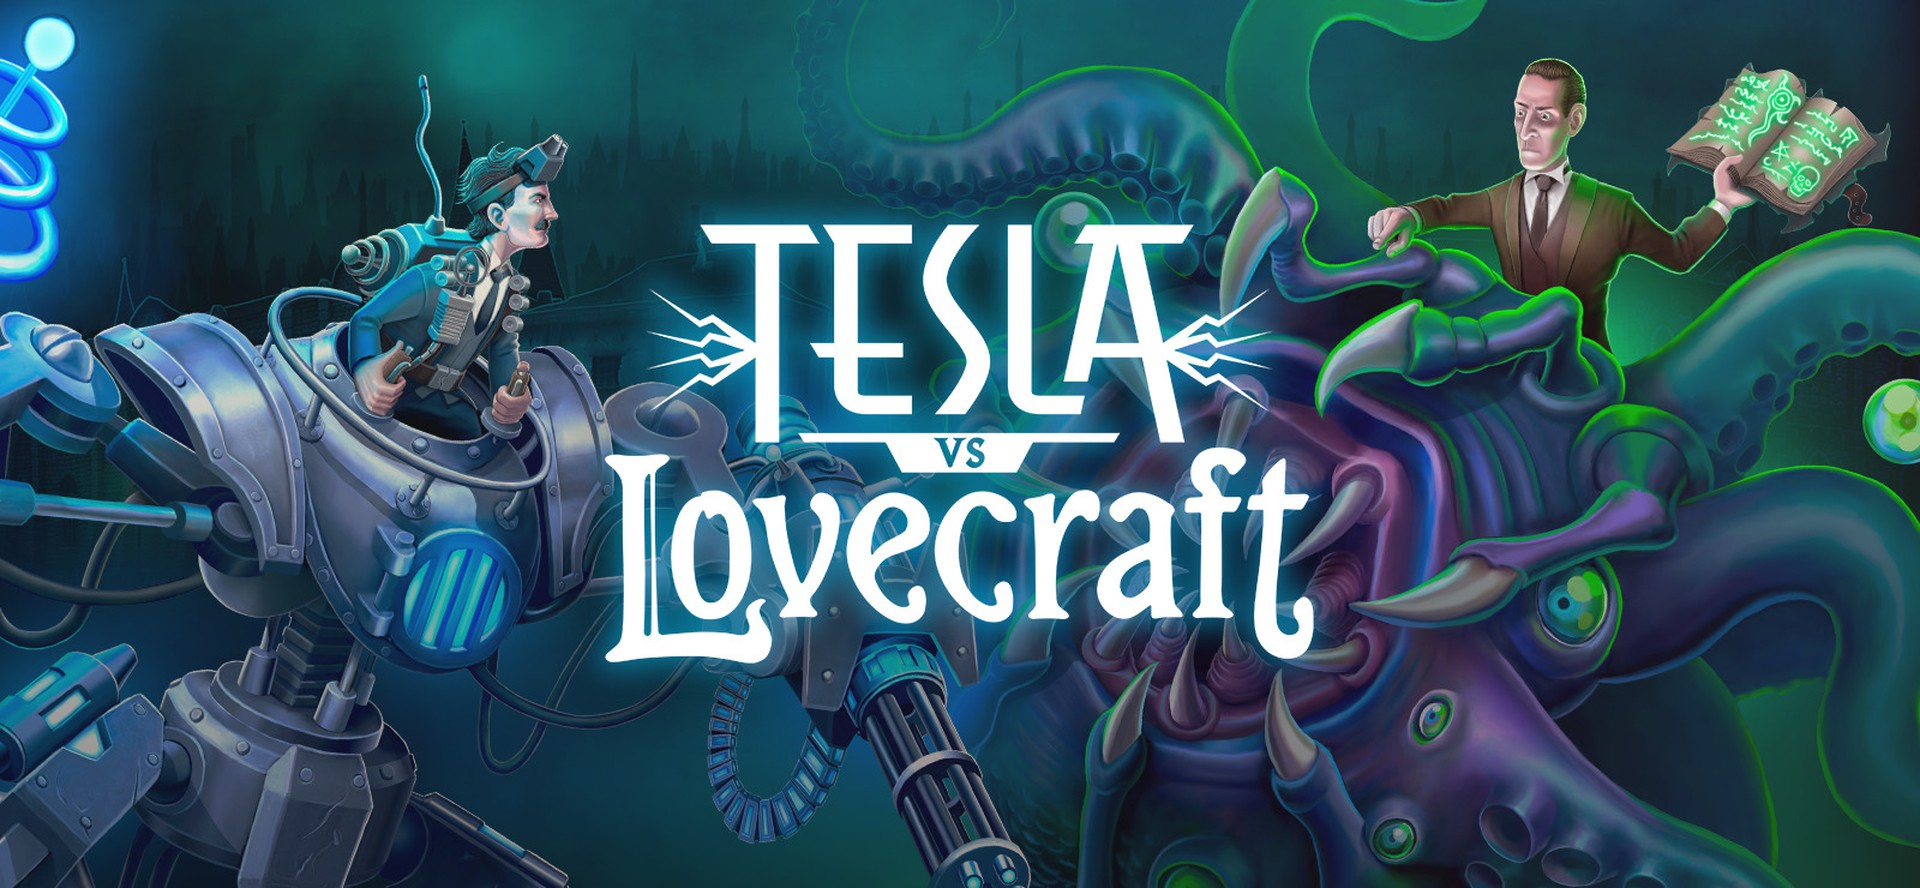 Tesla vs Lovecraft Video